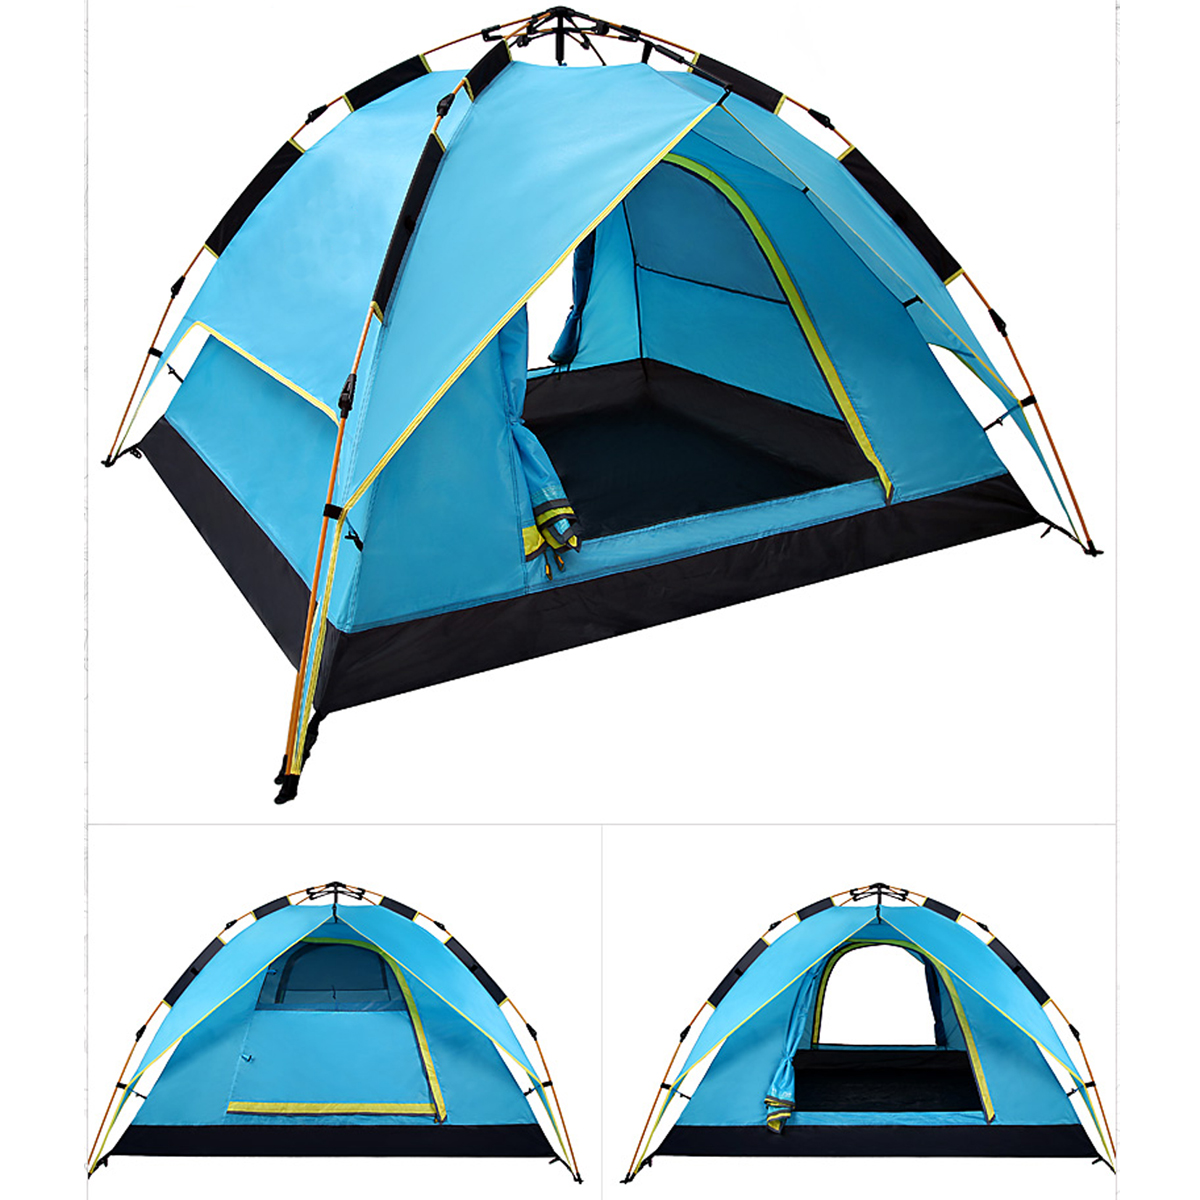 3 / 4 Person Automatic Tent Beach Tent Two-layer Double Tent Leisure Tent 200 * 200 * 135cm 190T Polyester PU Green / Blue high quality outdoor 2 person camping tent double layer aluminum rod ultralight tent with snow skirt oneroad windsnow 2 plus